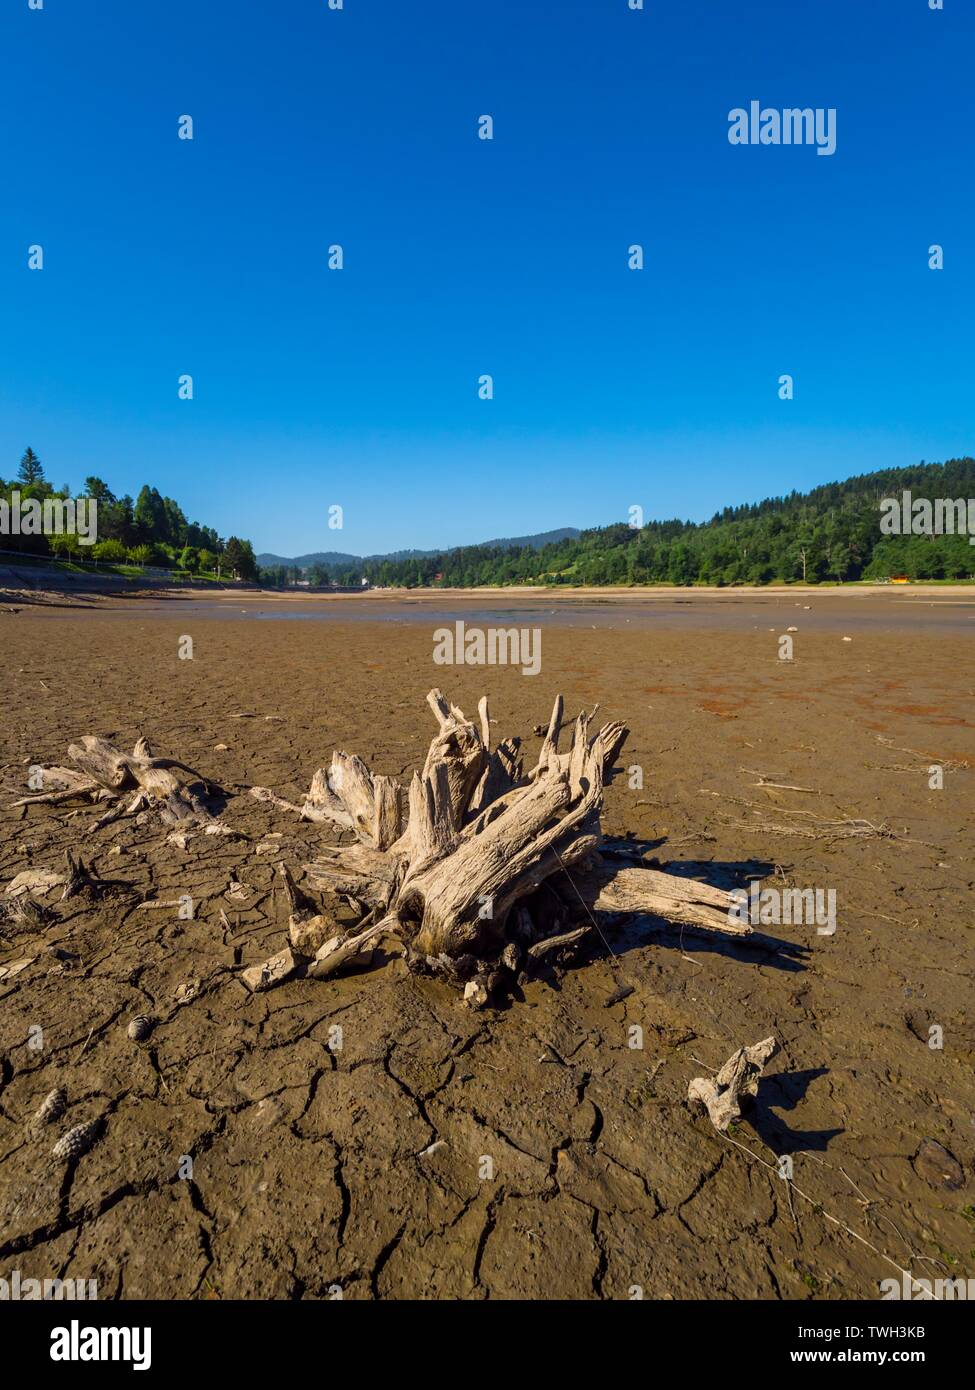 Dried lake-bed Bajer in Fuzine Croatia Spring 2019 lined tree stumps like going walking towards small lake pond Stock Photo